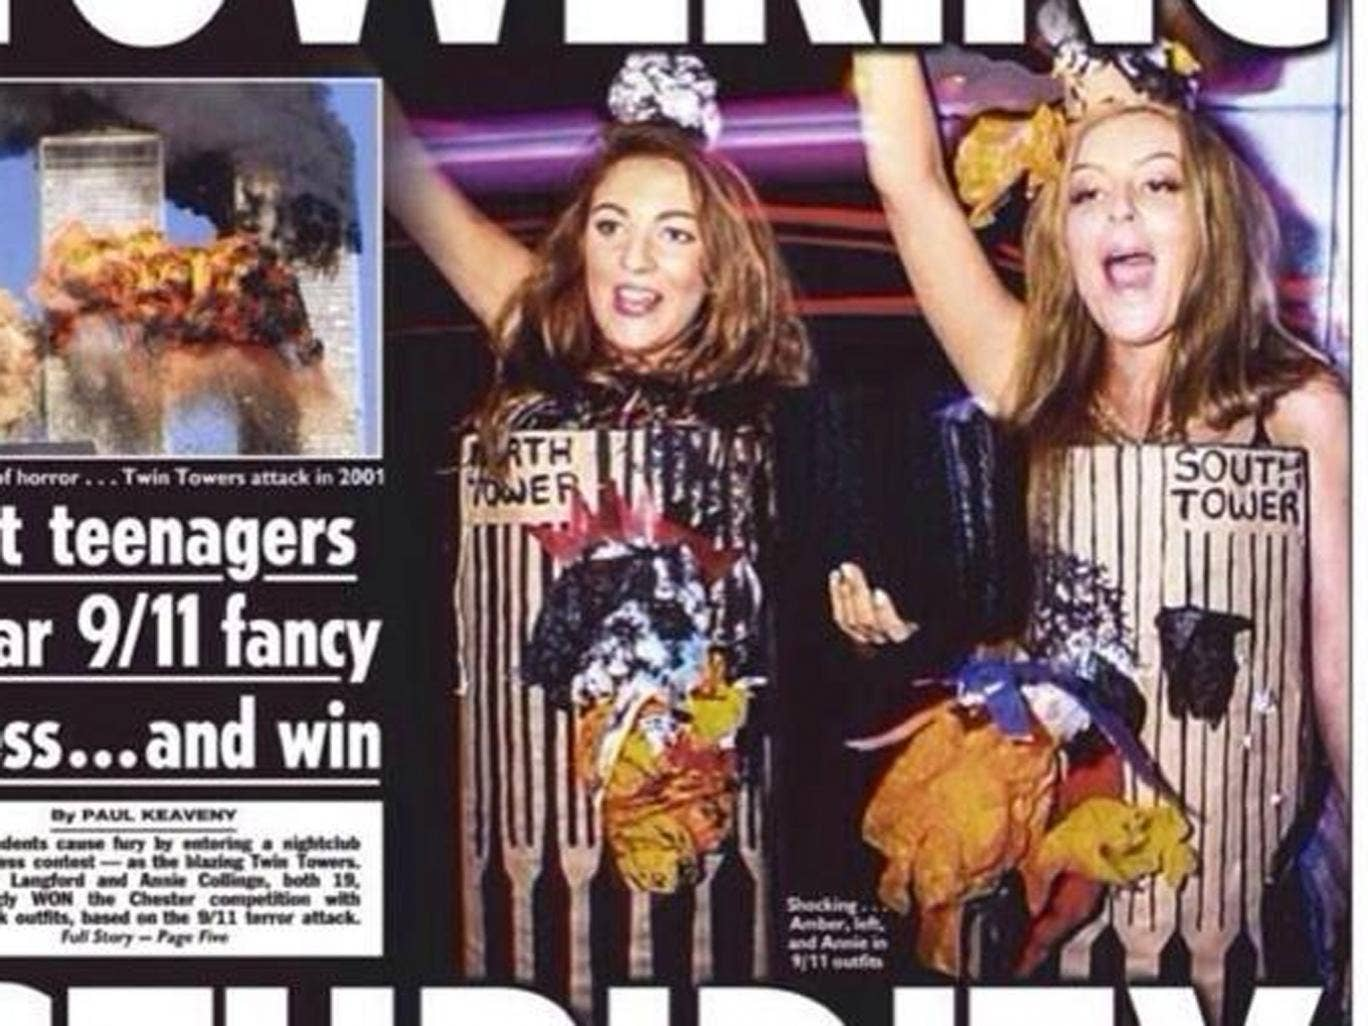 The front page of Wednesday's The Sun showed Amber Langford and Annie Collinge dressed as the burning Twin Towers for a Halloween costume competition